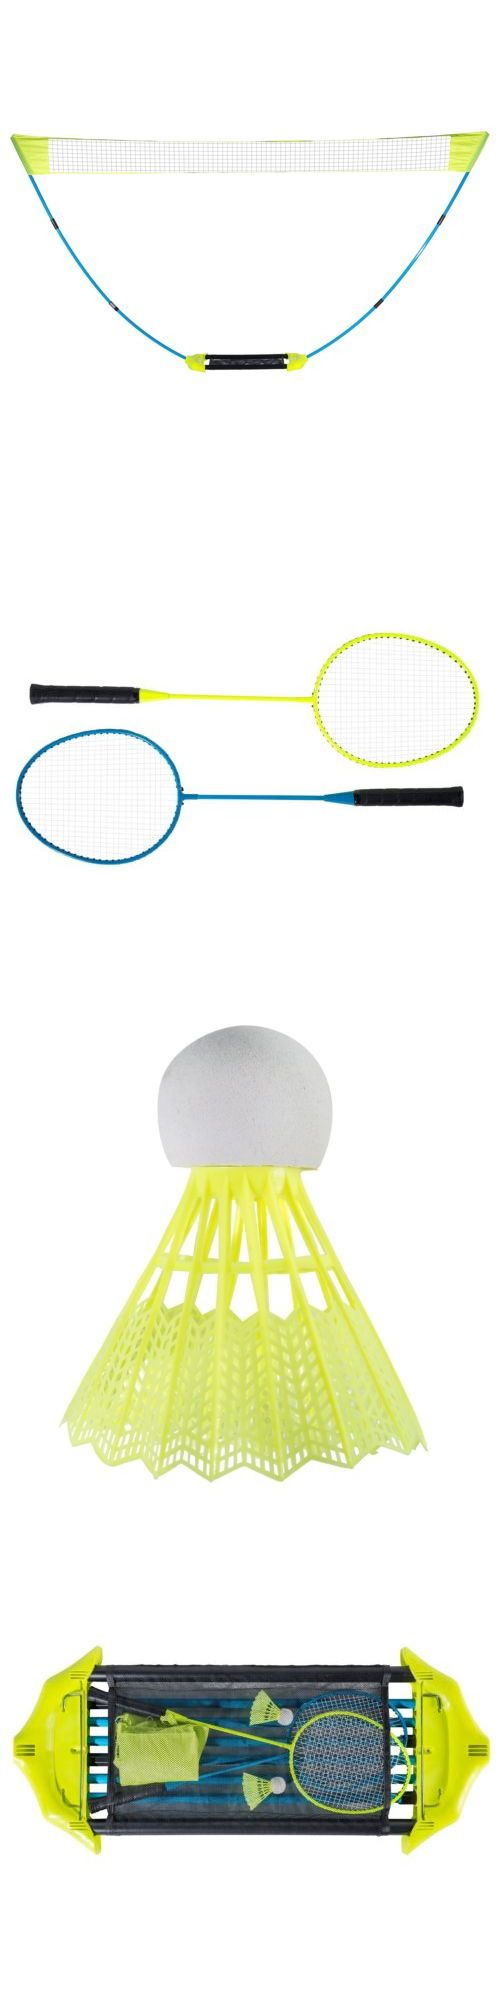 Other Outdoor Sports 159048: Franklin Sports Quikset Badminton -> BUY IT NOW ONLY: $38.95 on eBay!